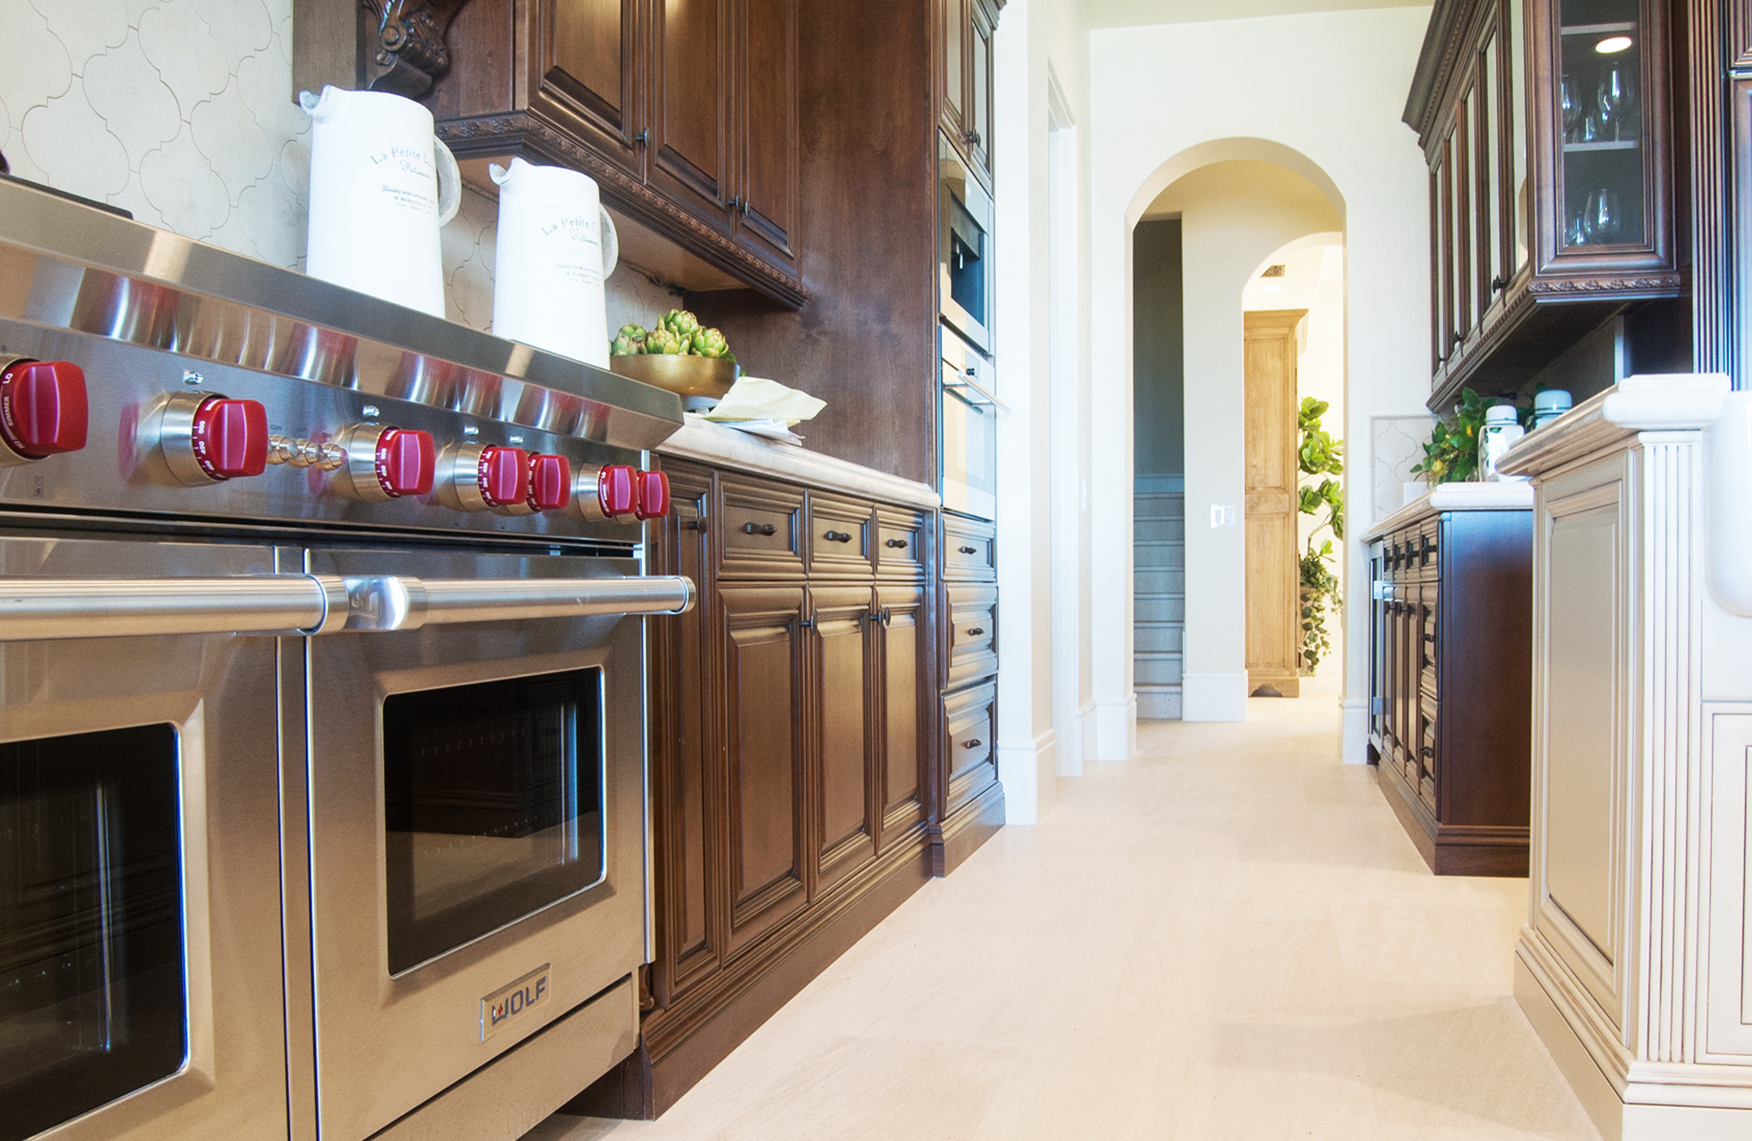 Classic style kitchen with sophisticated cabinetry and